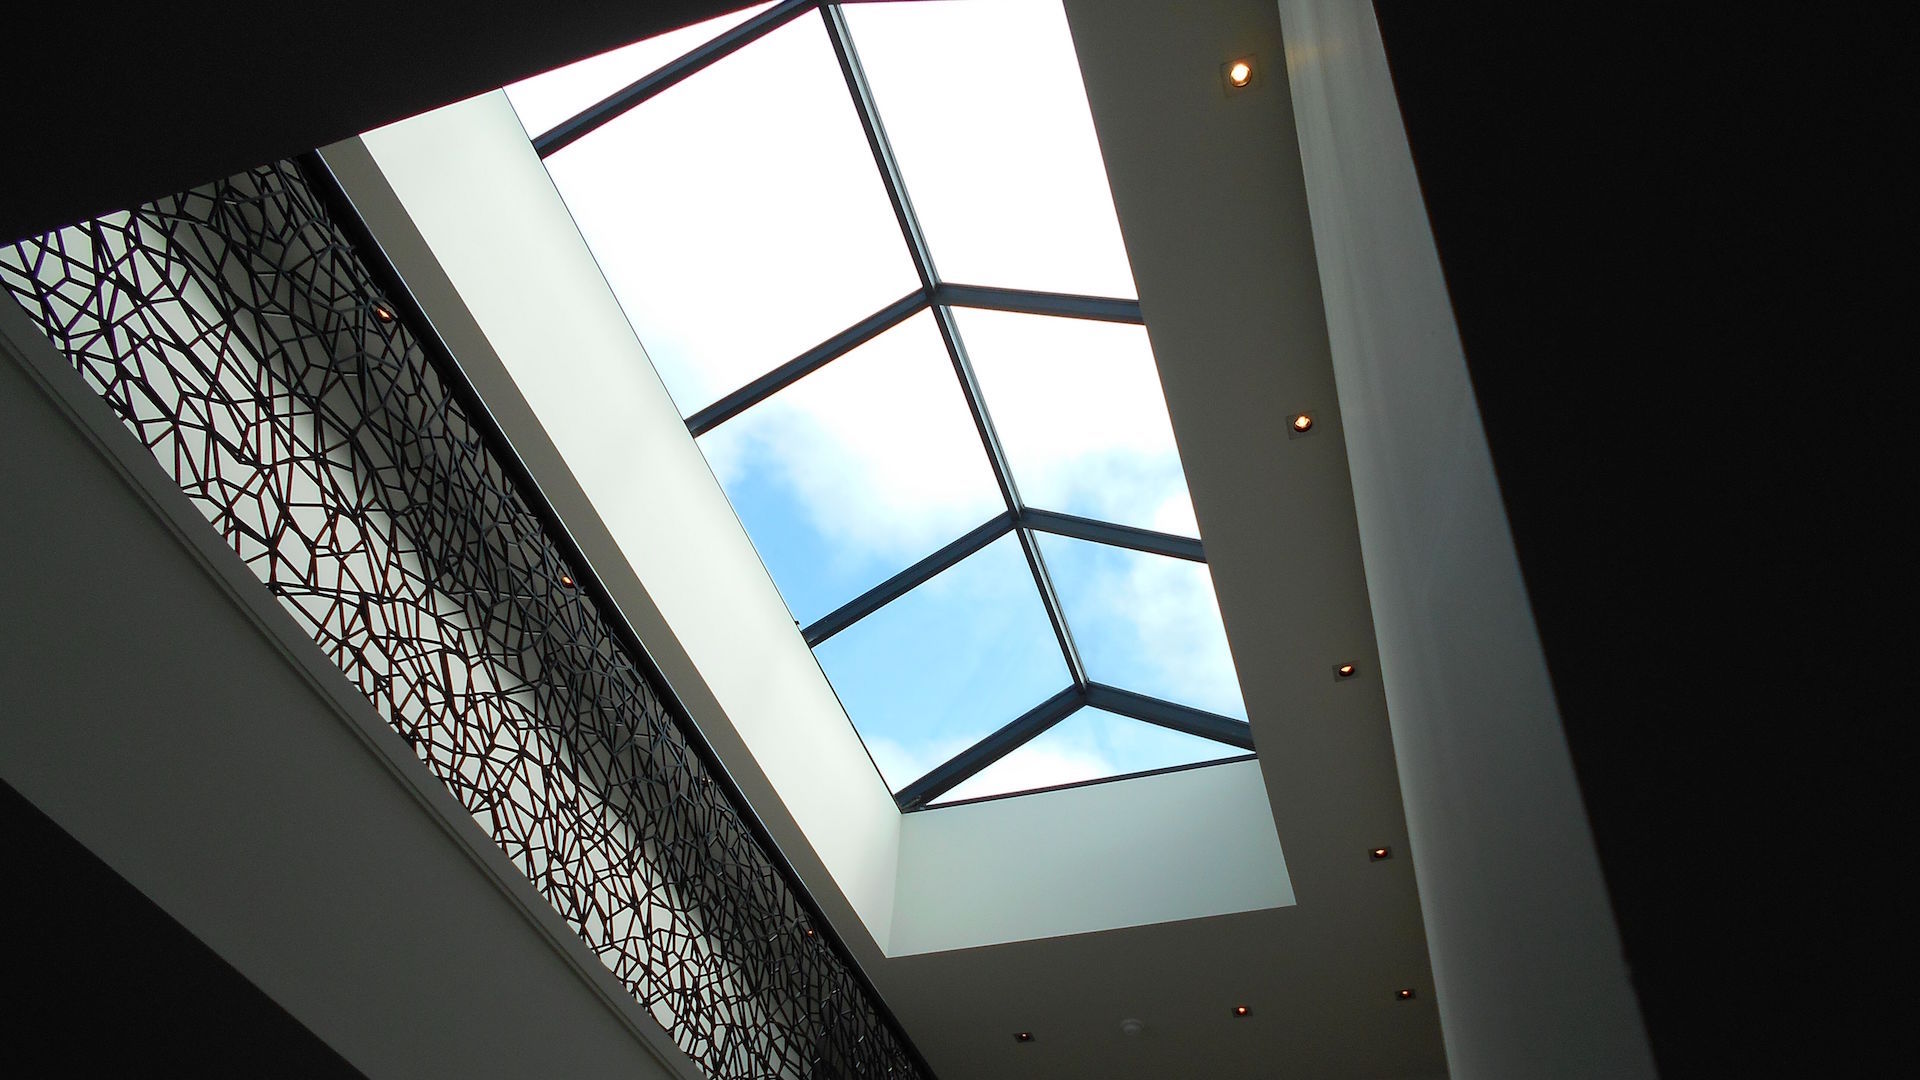 Skylights   To make not just skylights, but advanced building components of superior strength, thermal resistance and water tightness, we combine first-class frame systems with proprietary installation tie in. This makes possible the most light transparent yet thermally efficient ceiling designs generally unthinkable in Canadian winters.